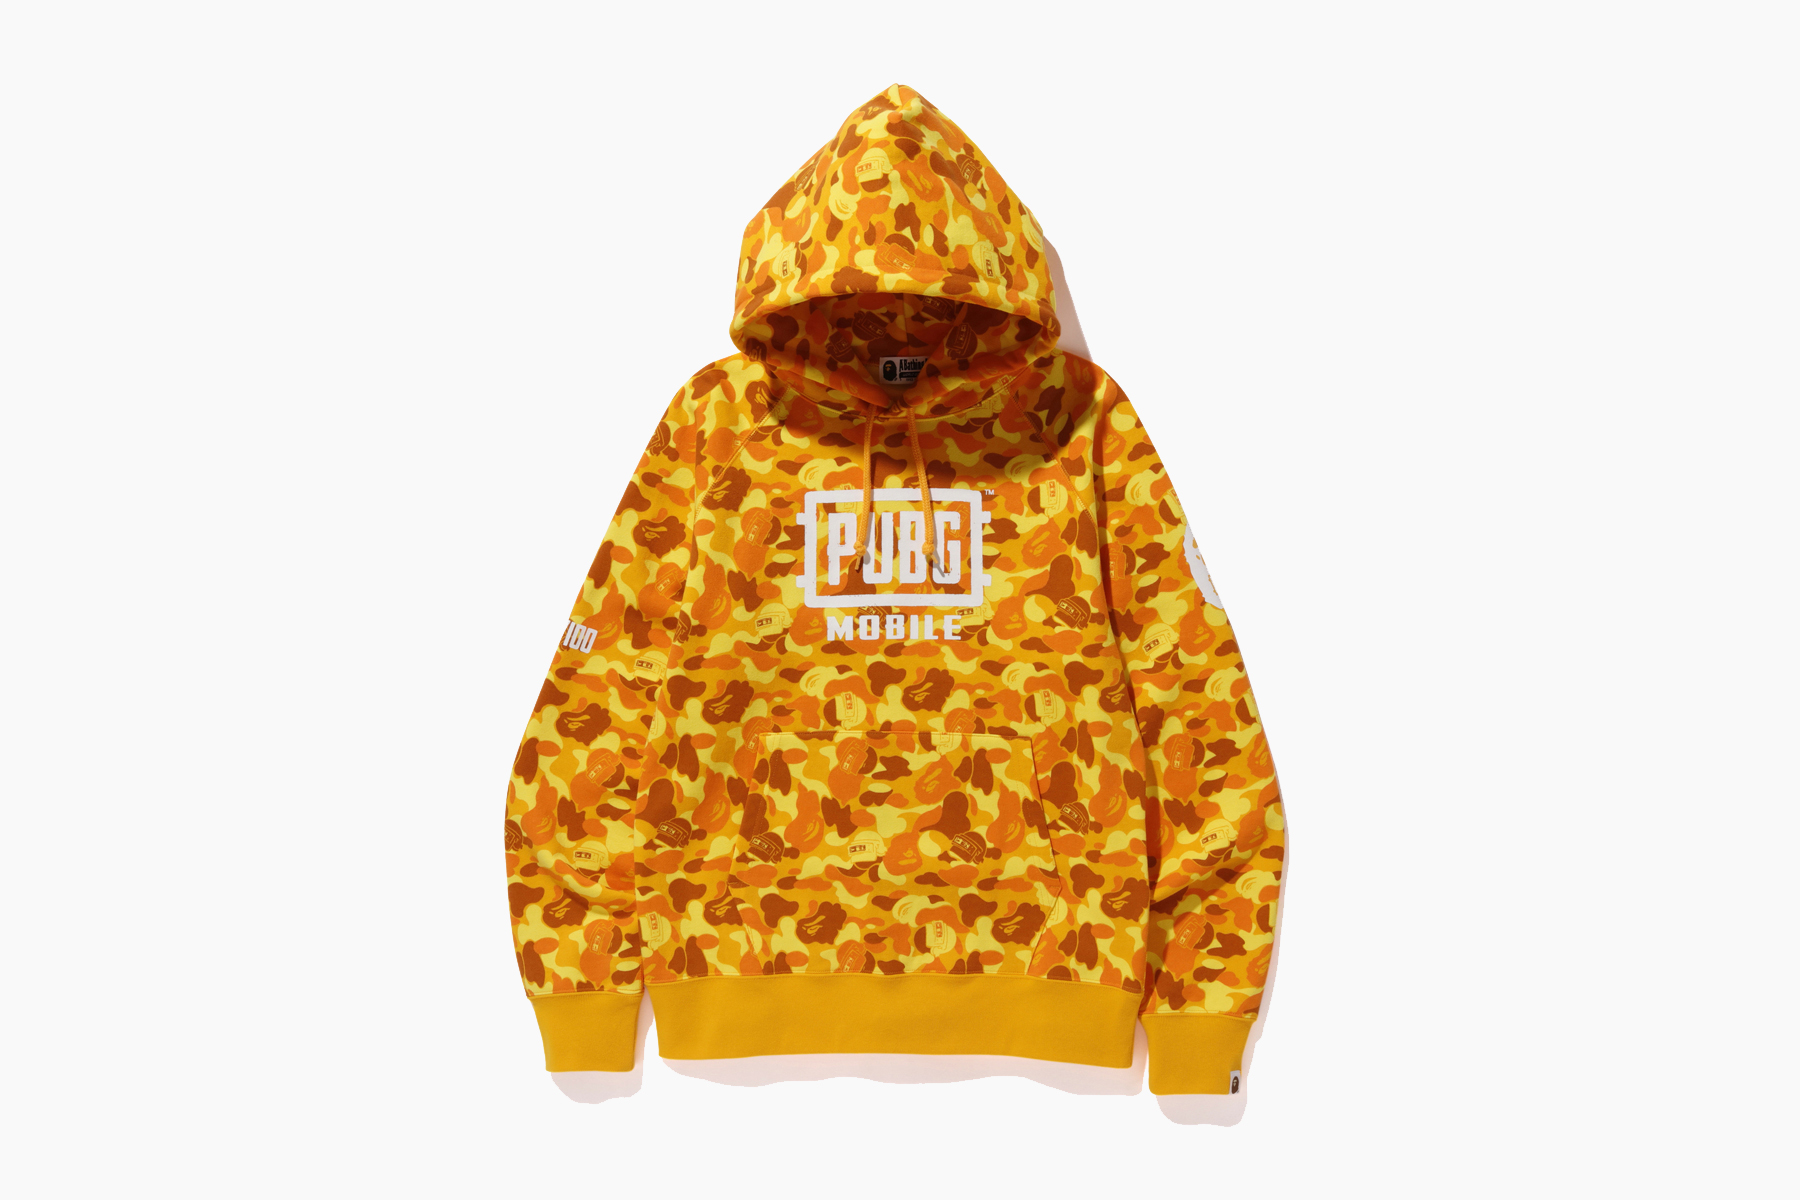 BAPE x PUBG Capsule Collection